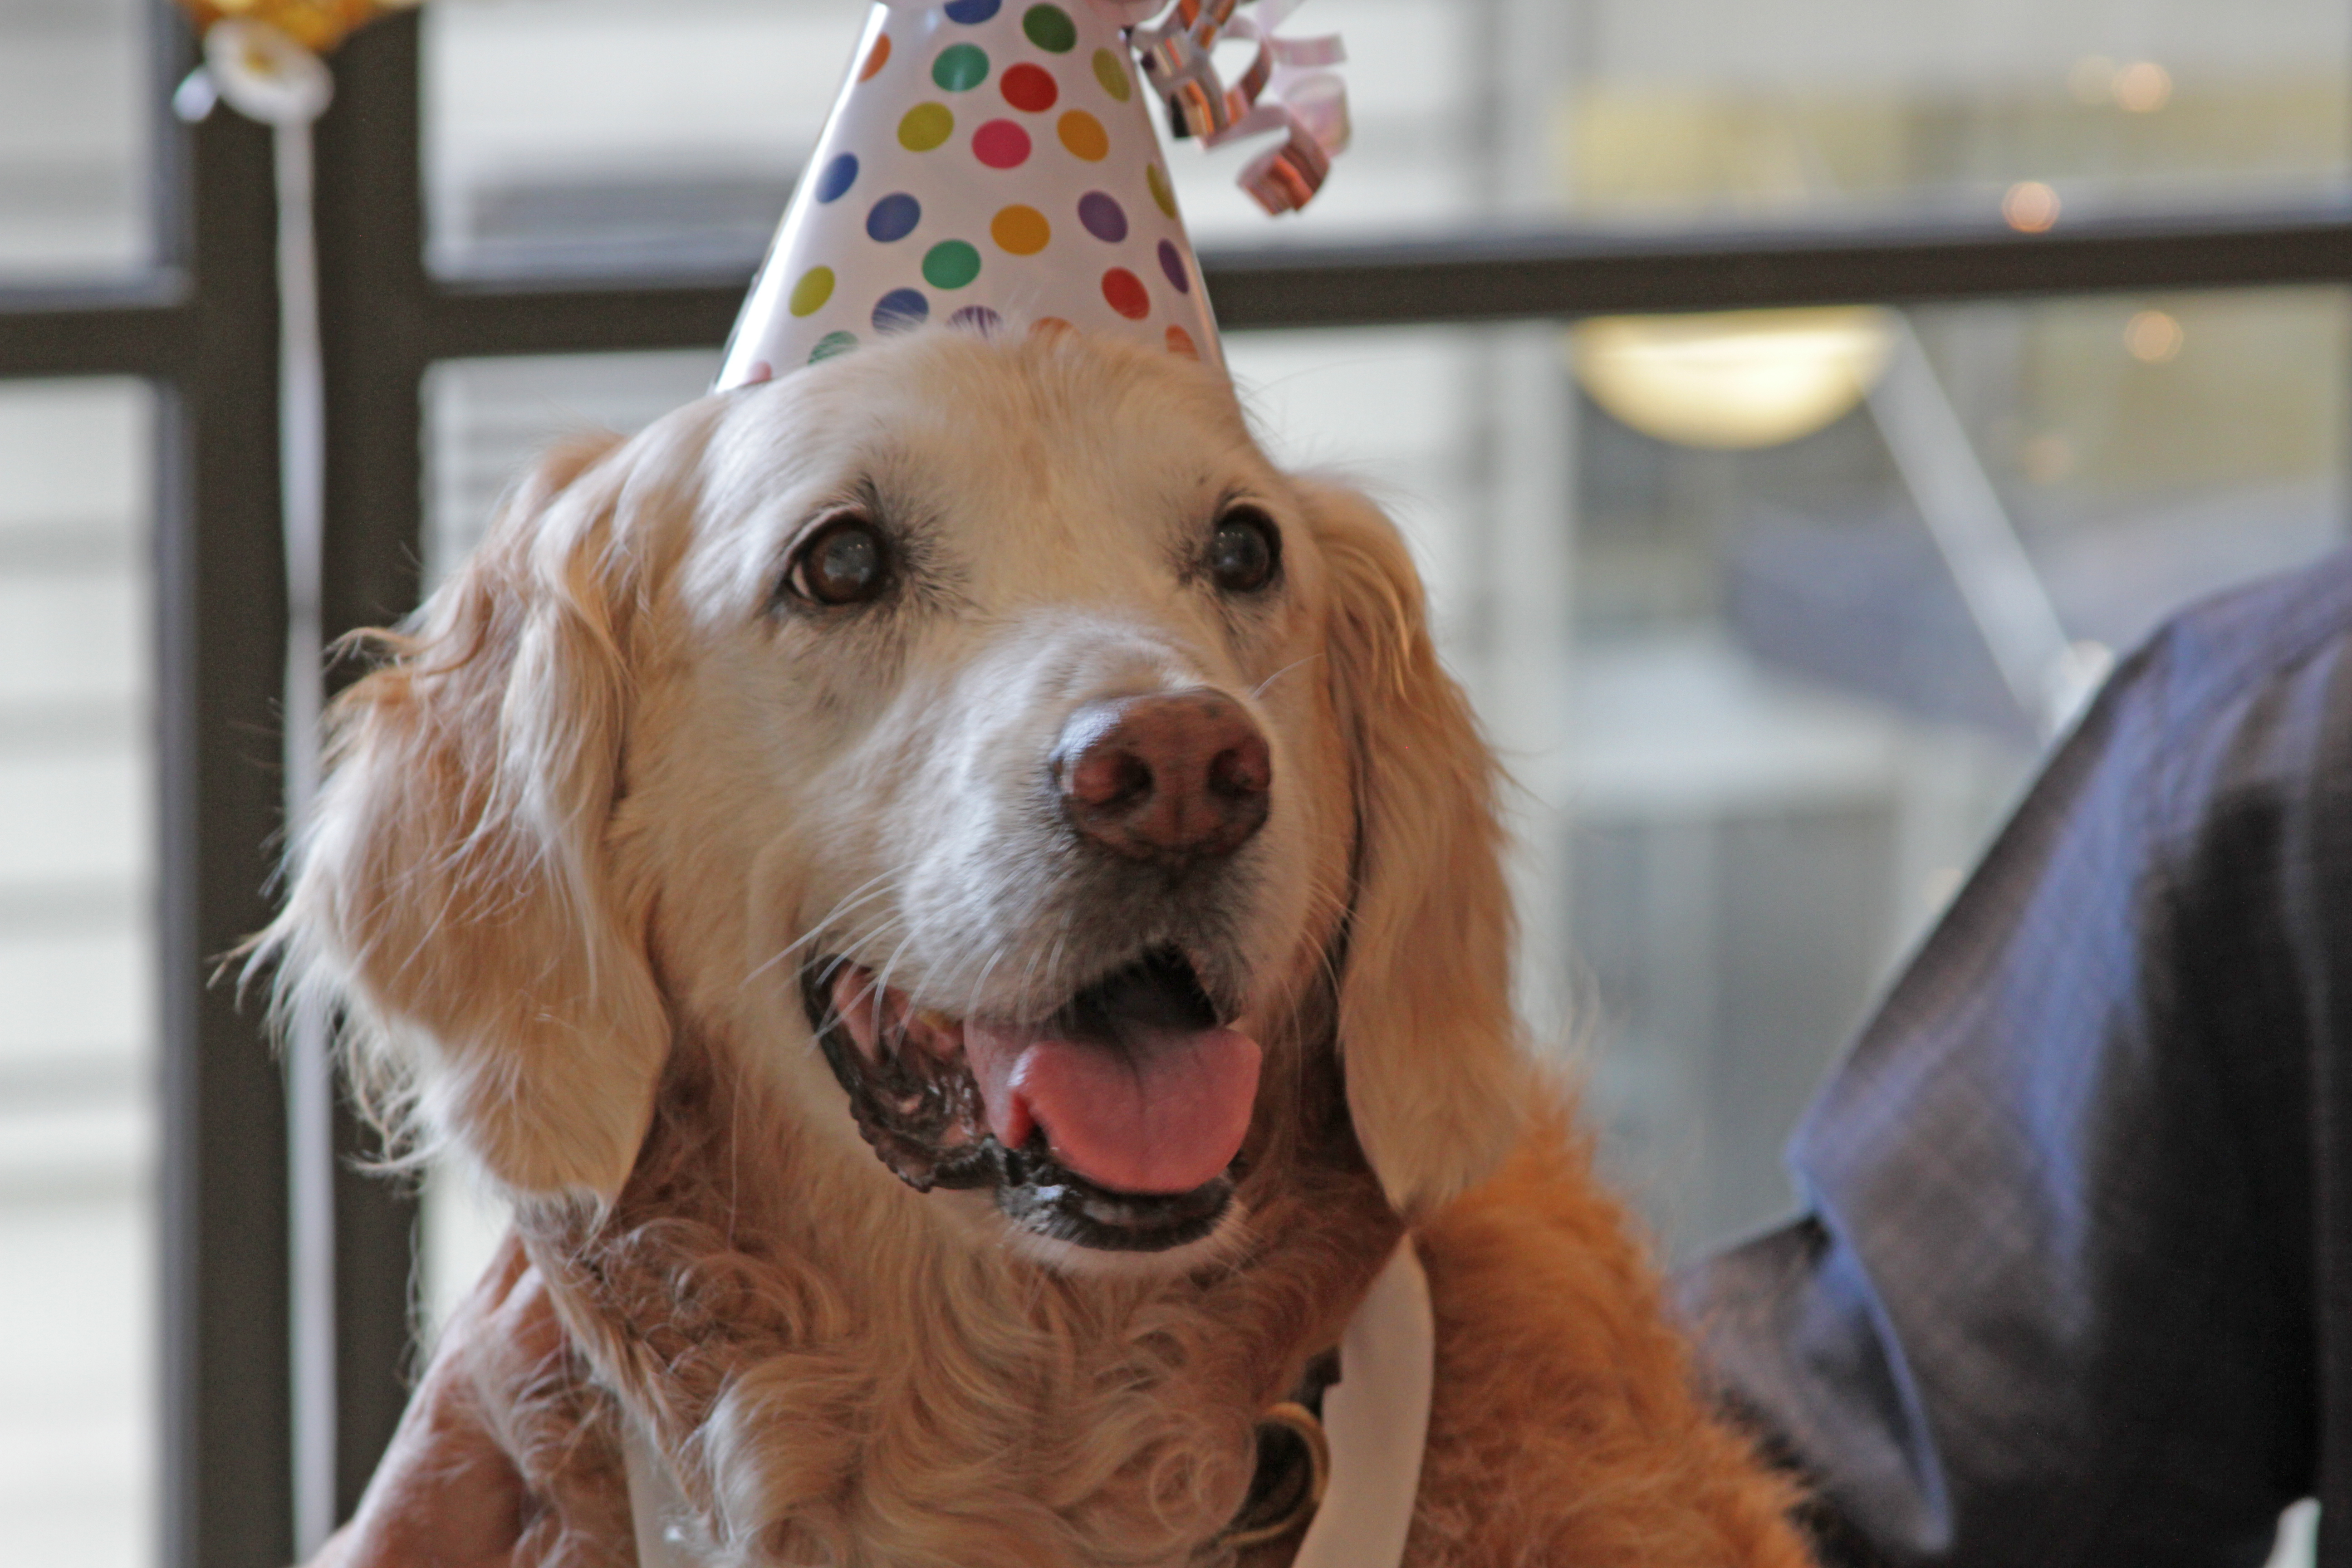 Rescue dog Bretagne, who searched for survivors and victims after the September 11, 2001 attack in New York, celebrated her 16th birthday amid a lot of attention and pampering. (Barkpost.com)